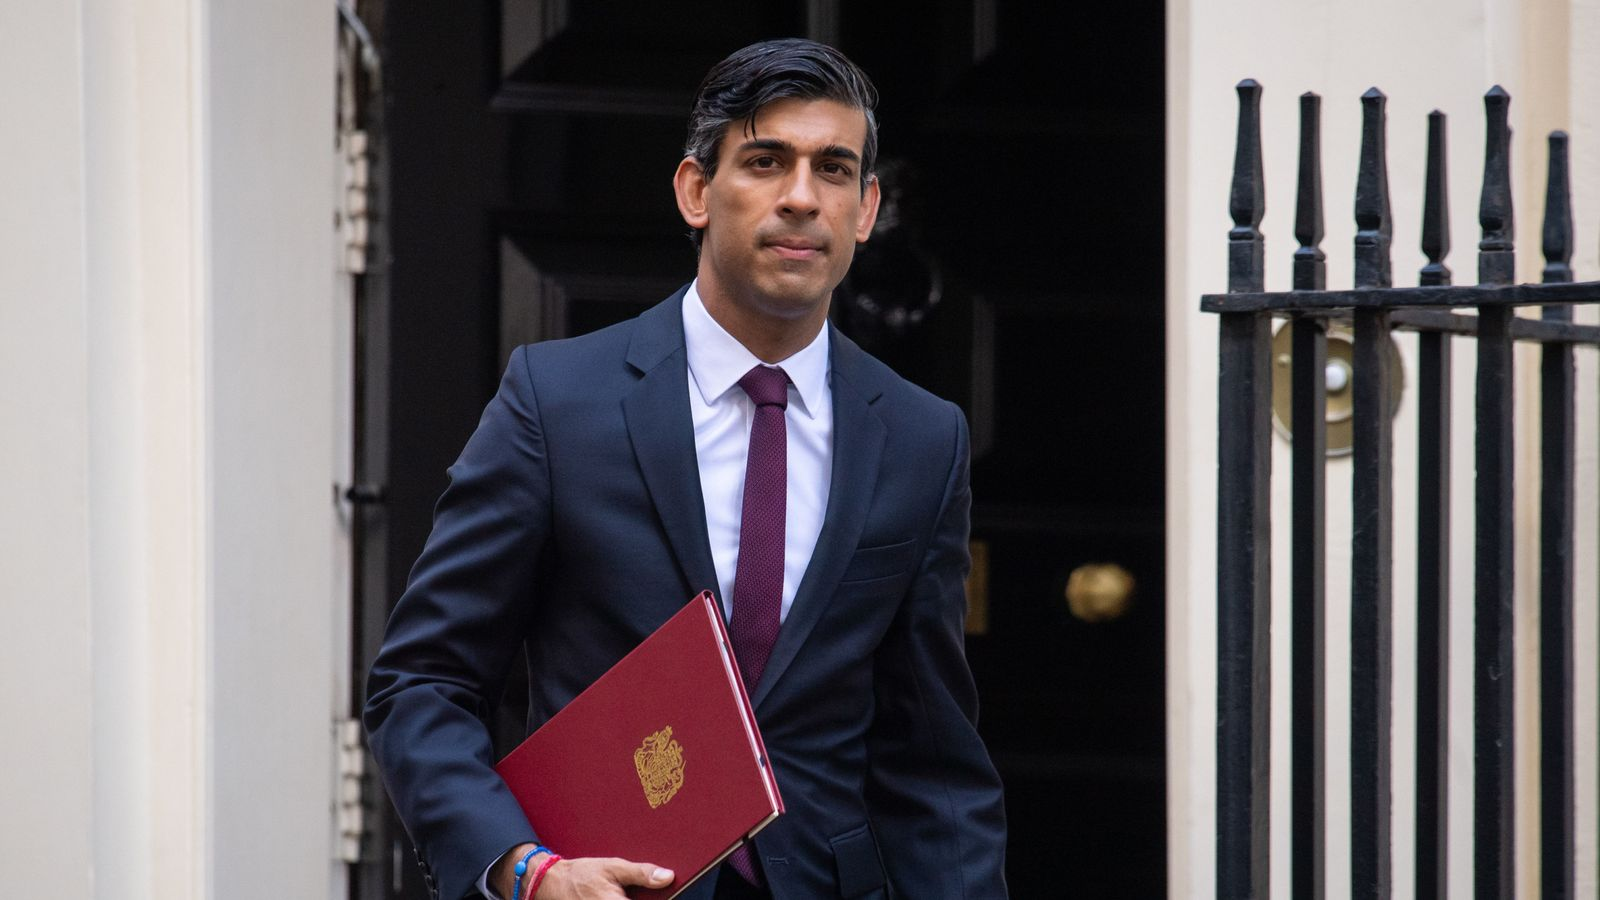 Rishi Sunak: UK economy to face 'enormous strains' following lockdown